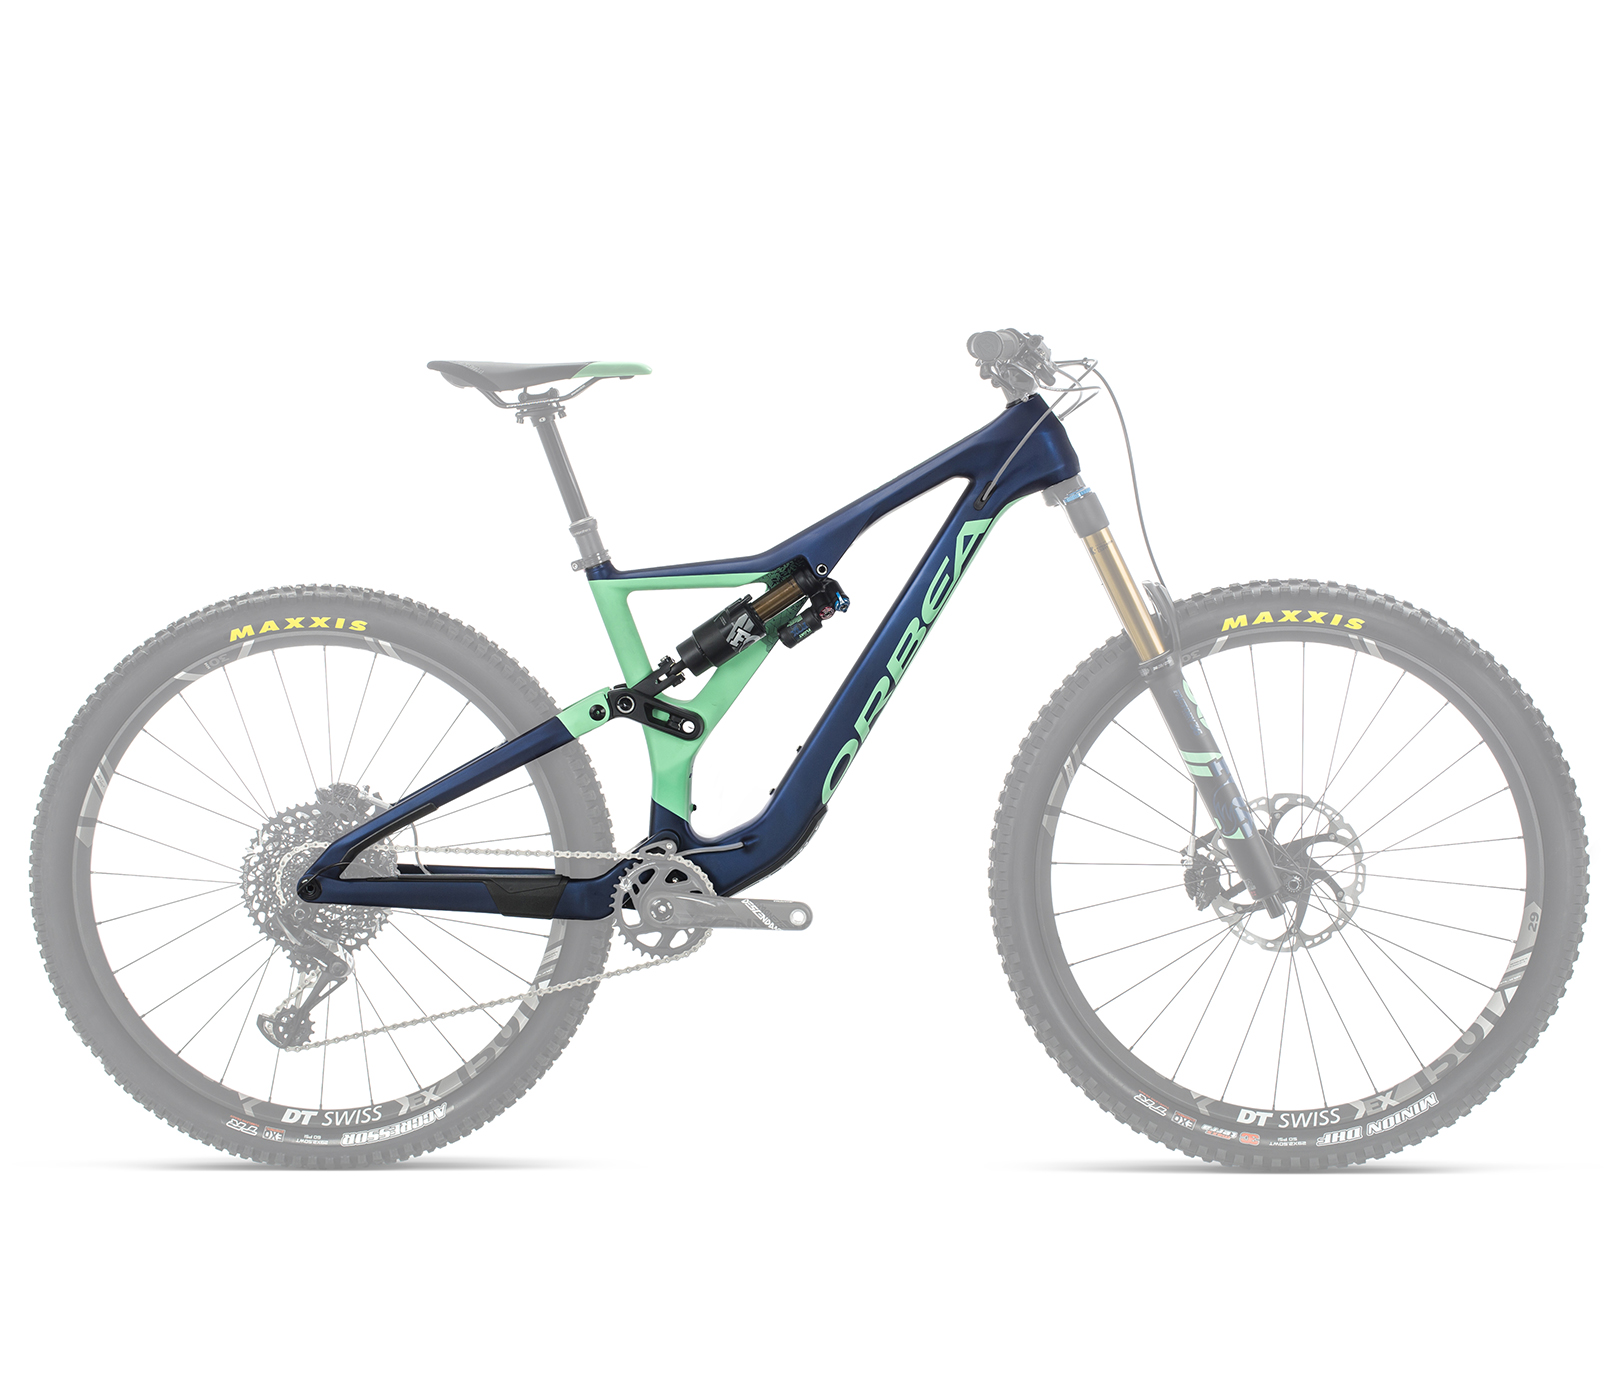 RALLON+FLOAT X2 19 — Orbea